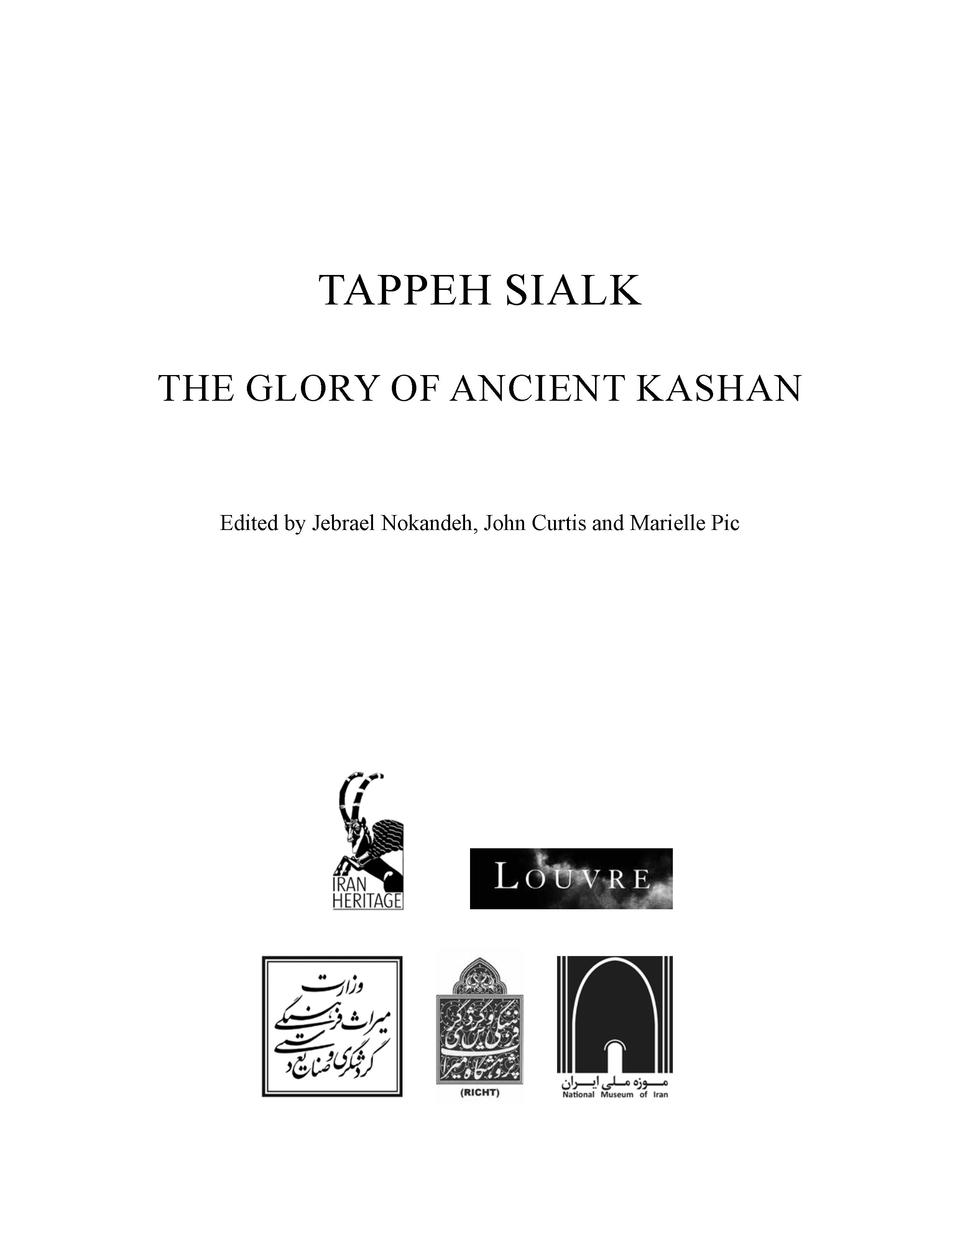 TAPPEH SIALK THE GLORY OF ANCIENT KASHAN  Edited by Jebrael Nokandeh, John Curtis and Marielle Pic